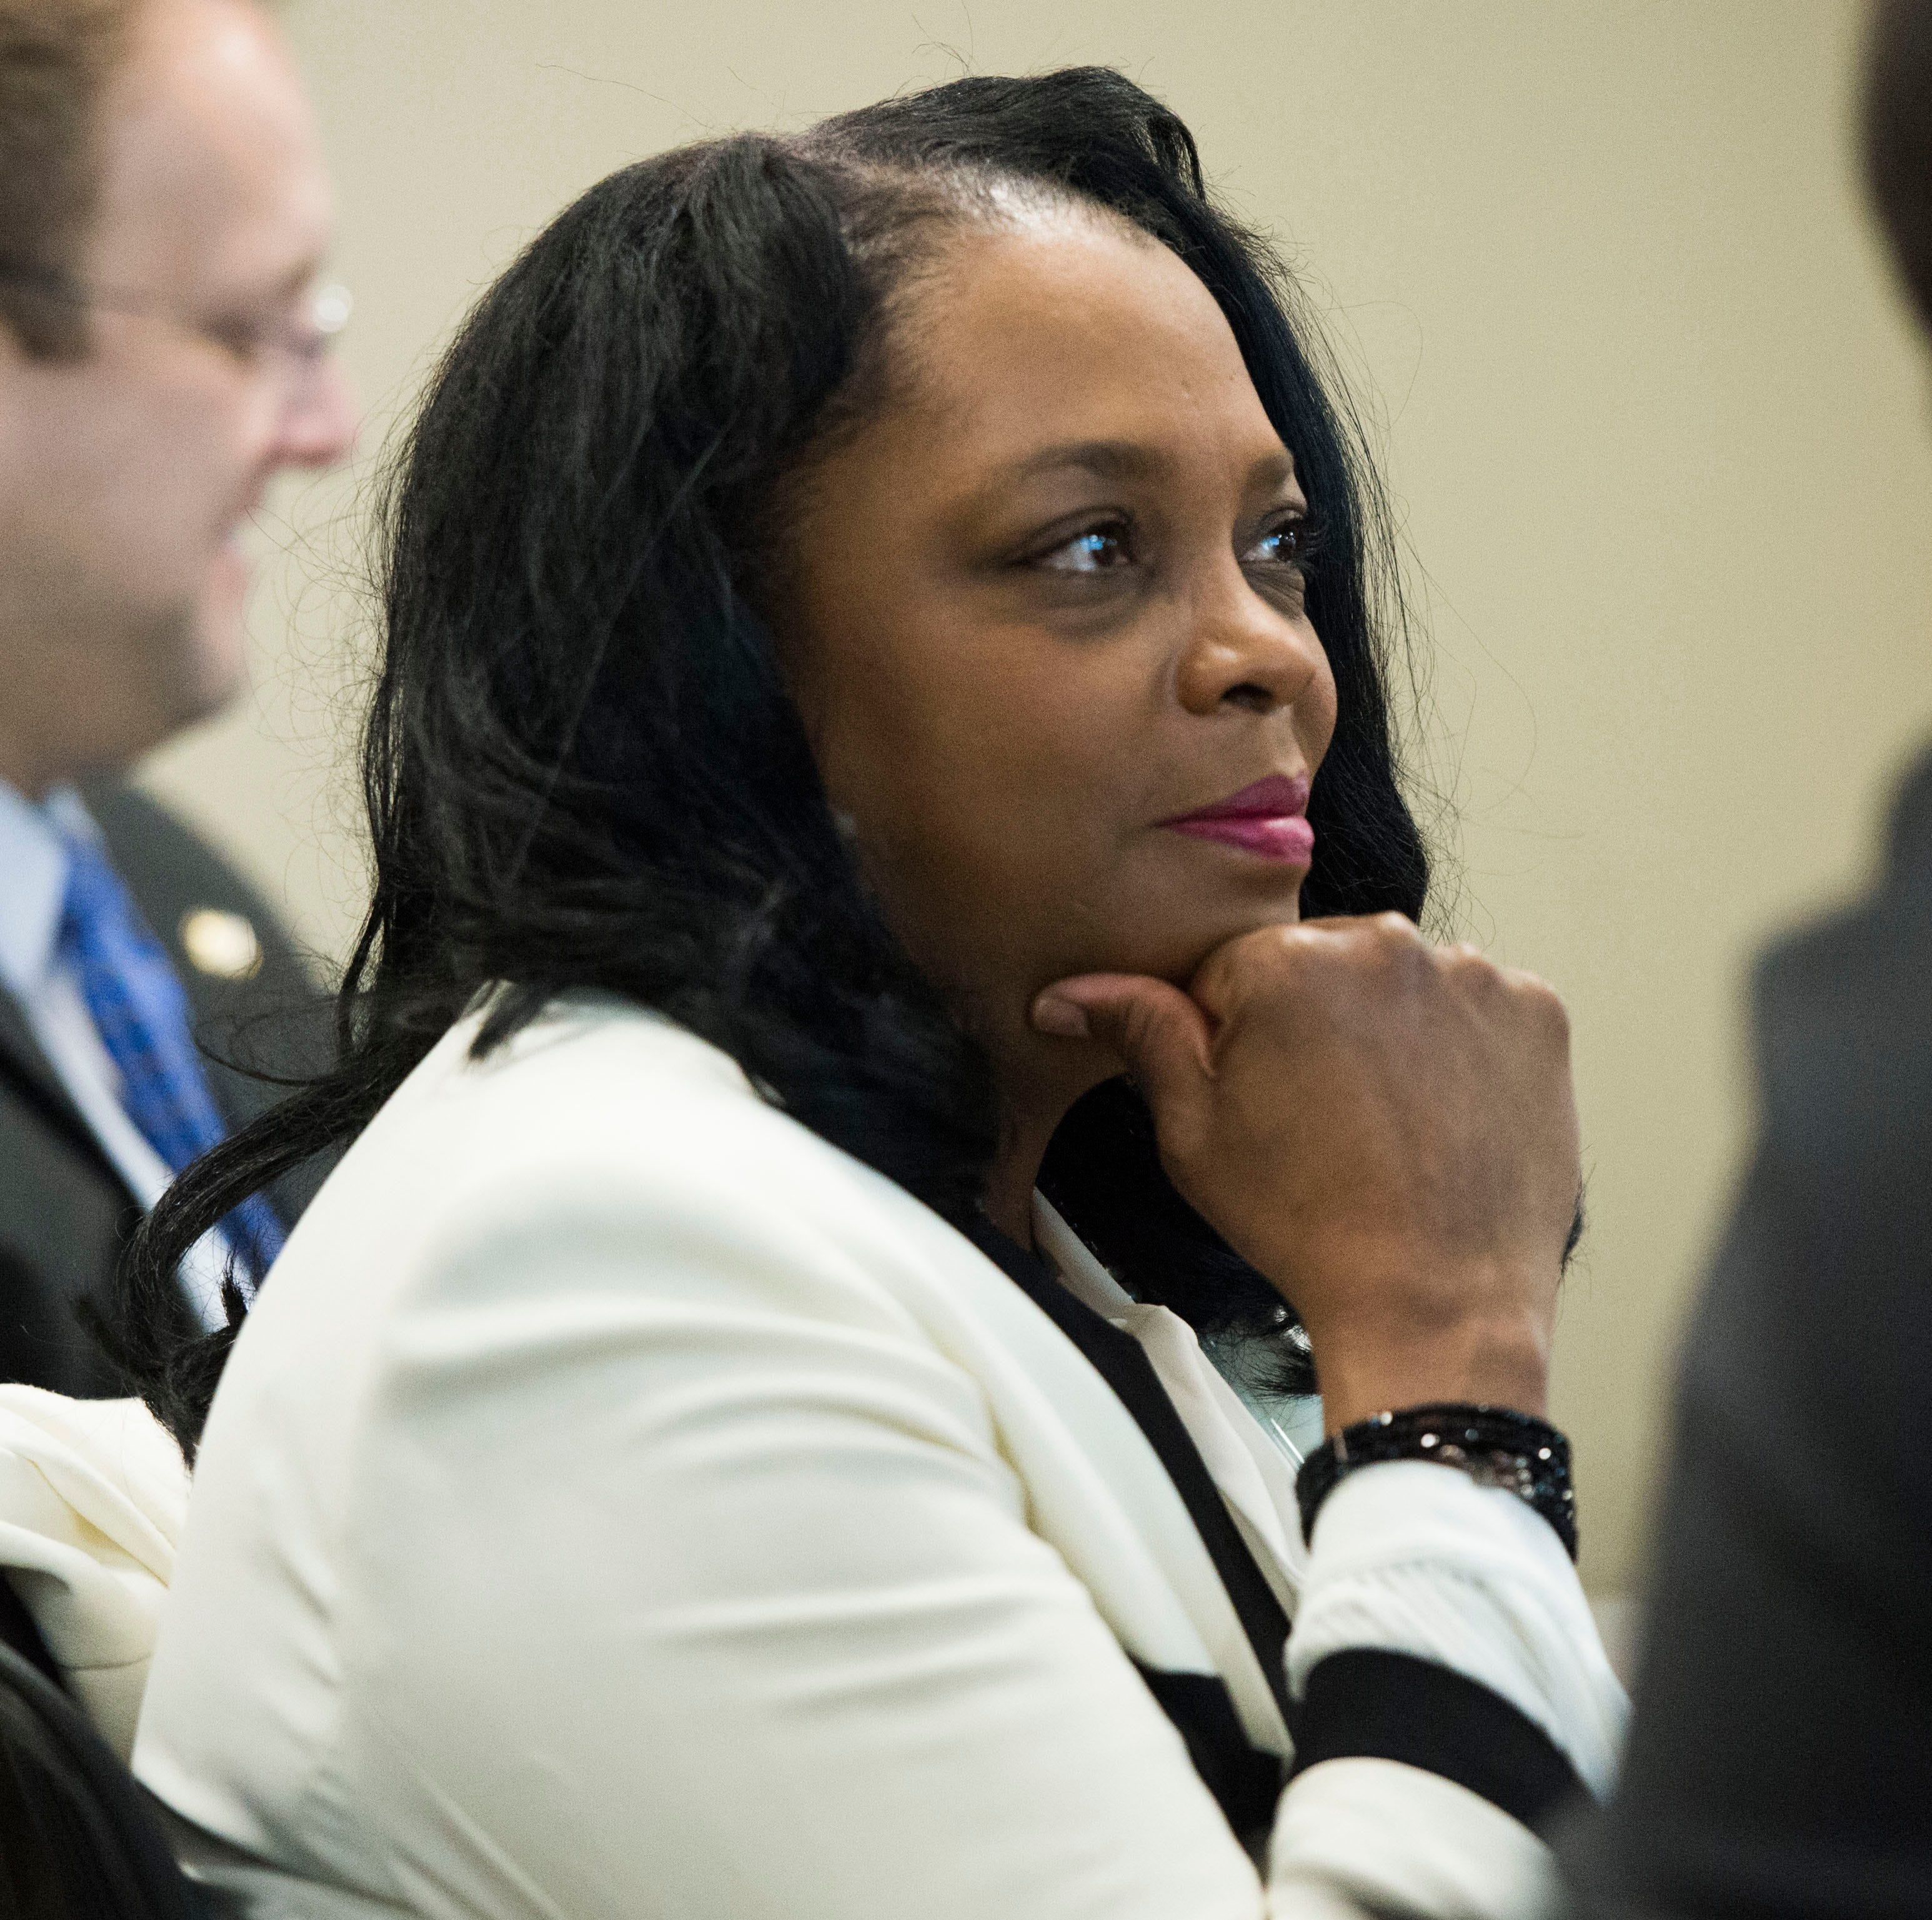 Evelyn Gill keeps county commissioner job after law director closes ouster investigation